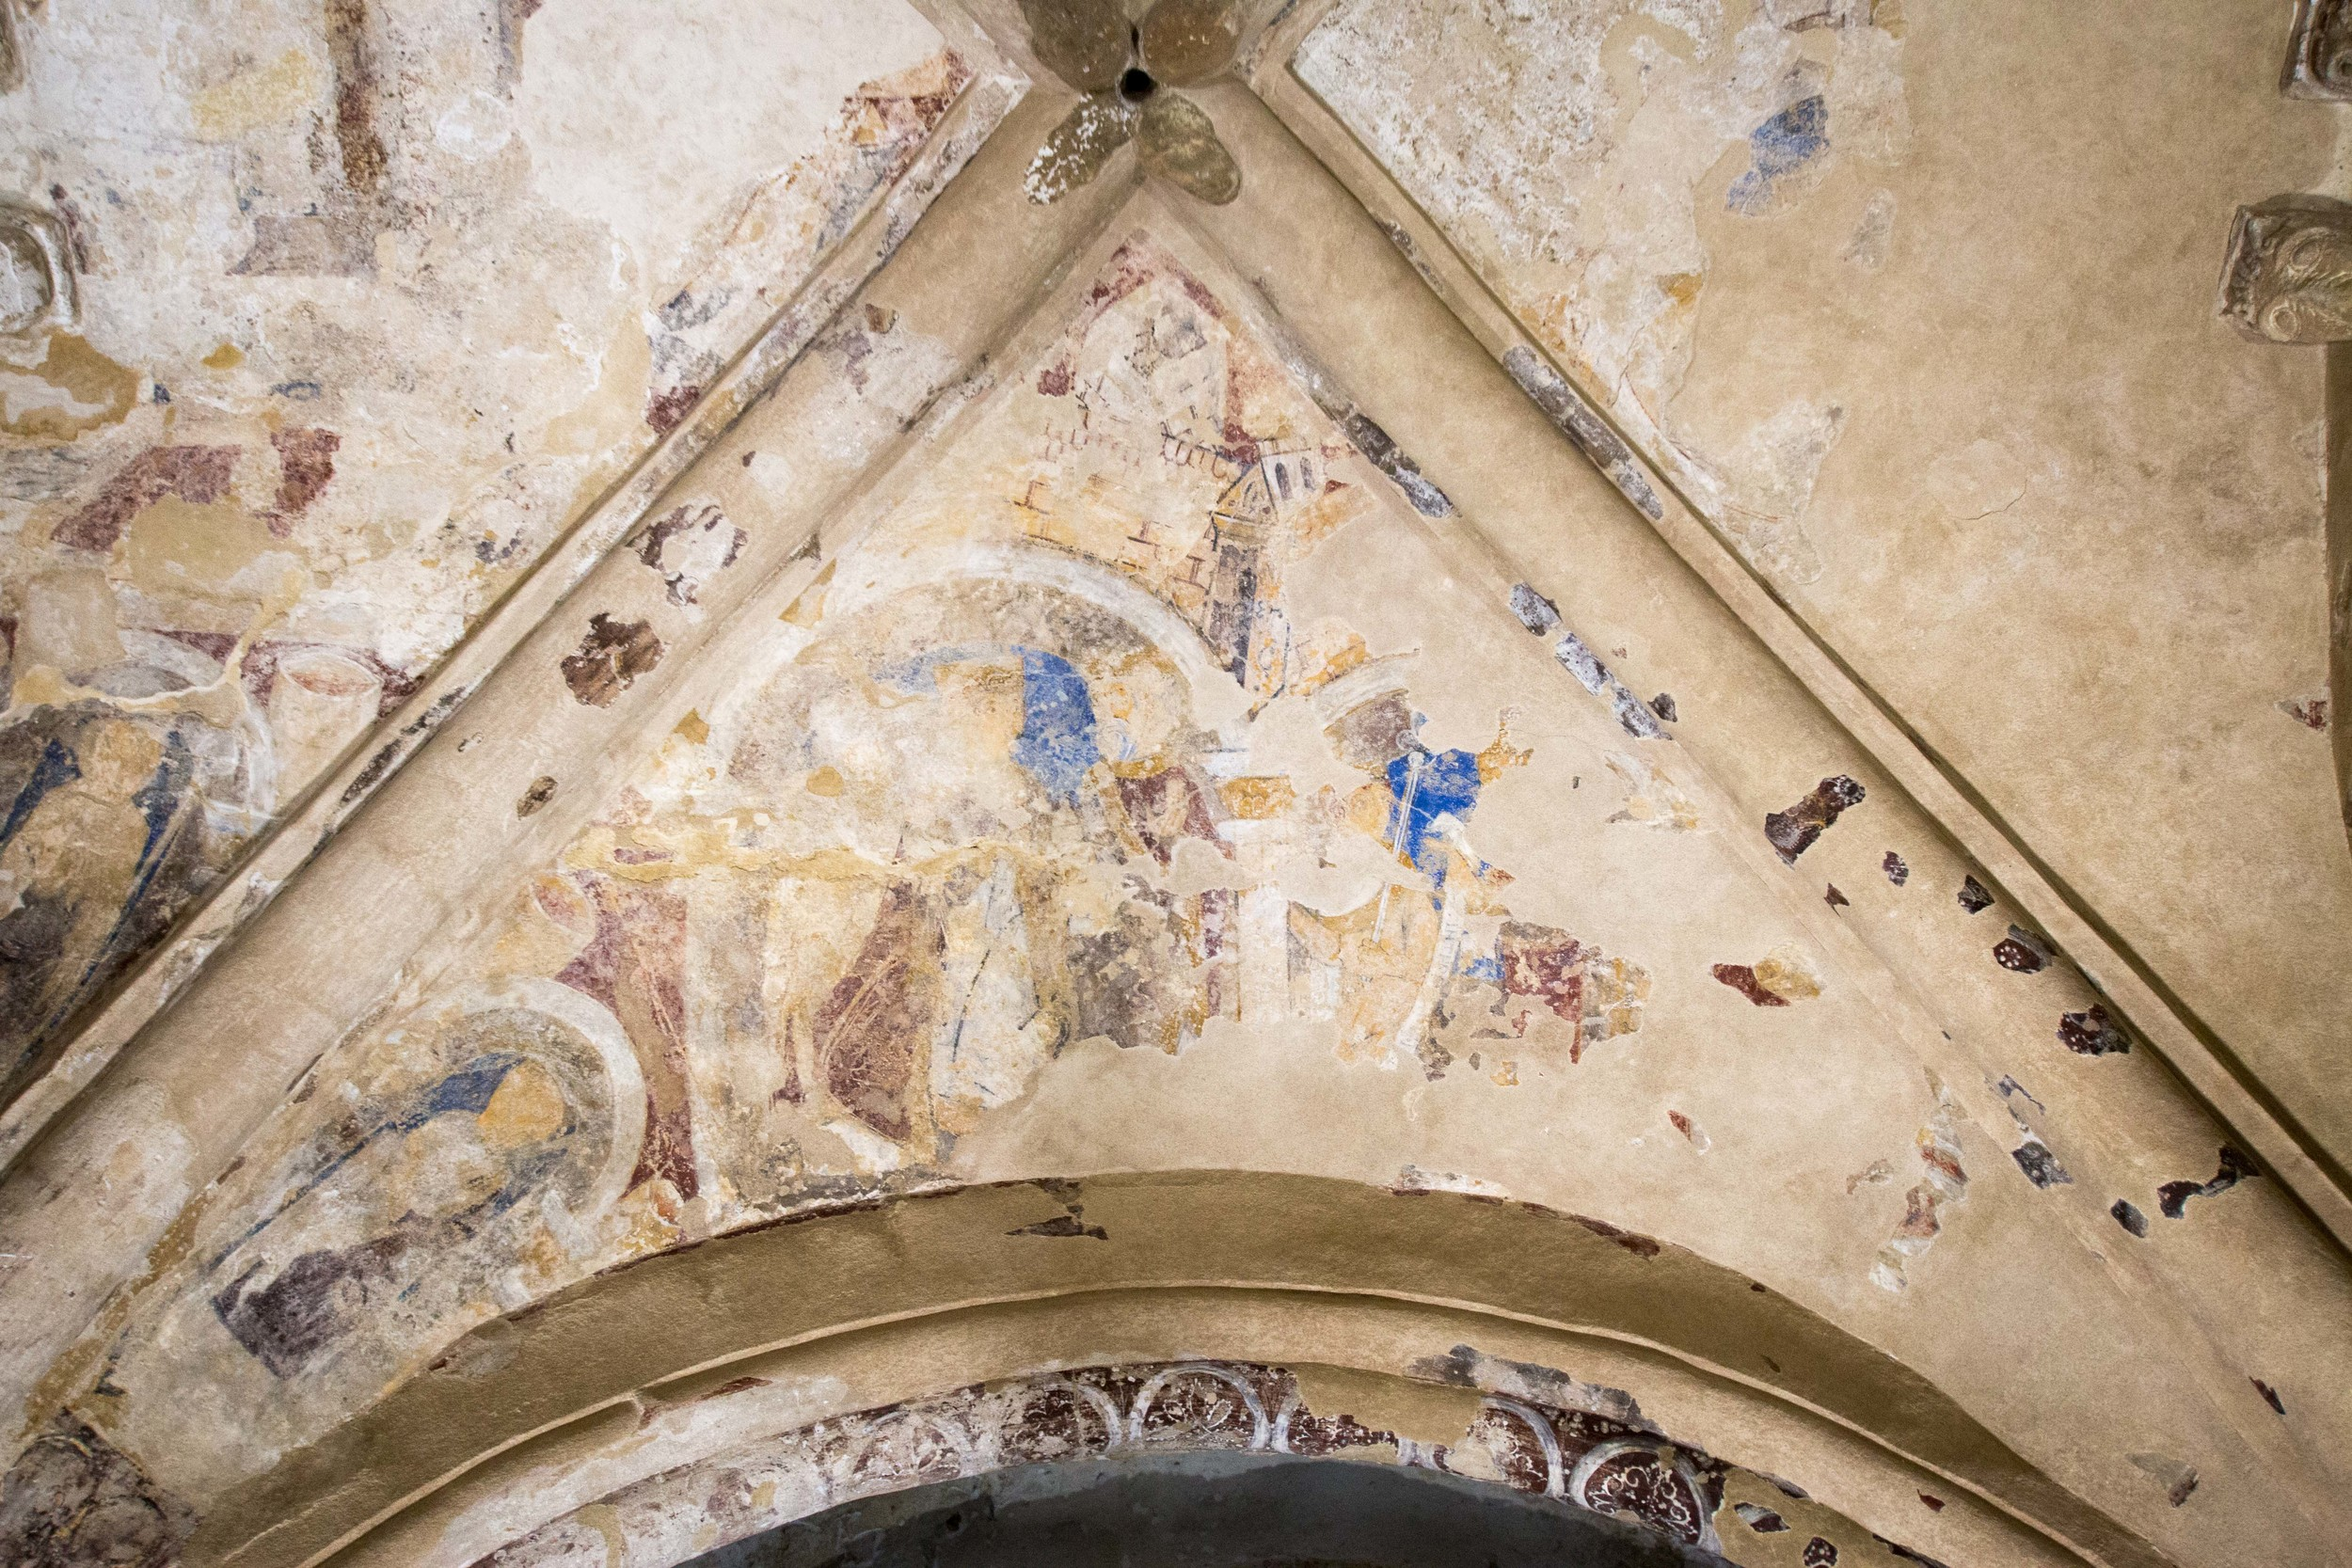 Part of the Cathedral at Rock of Cashel with faint paint still visible